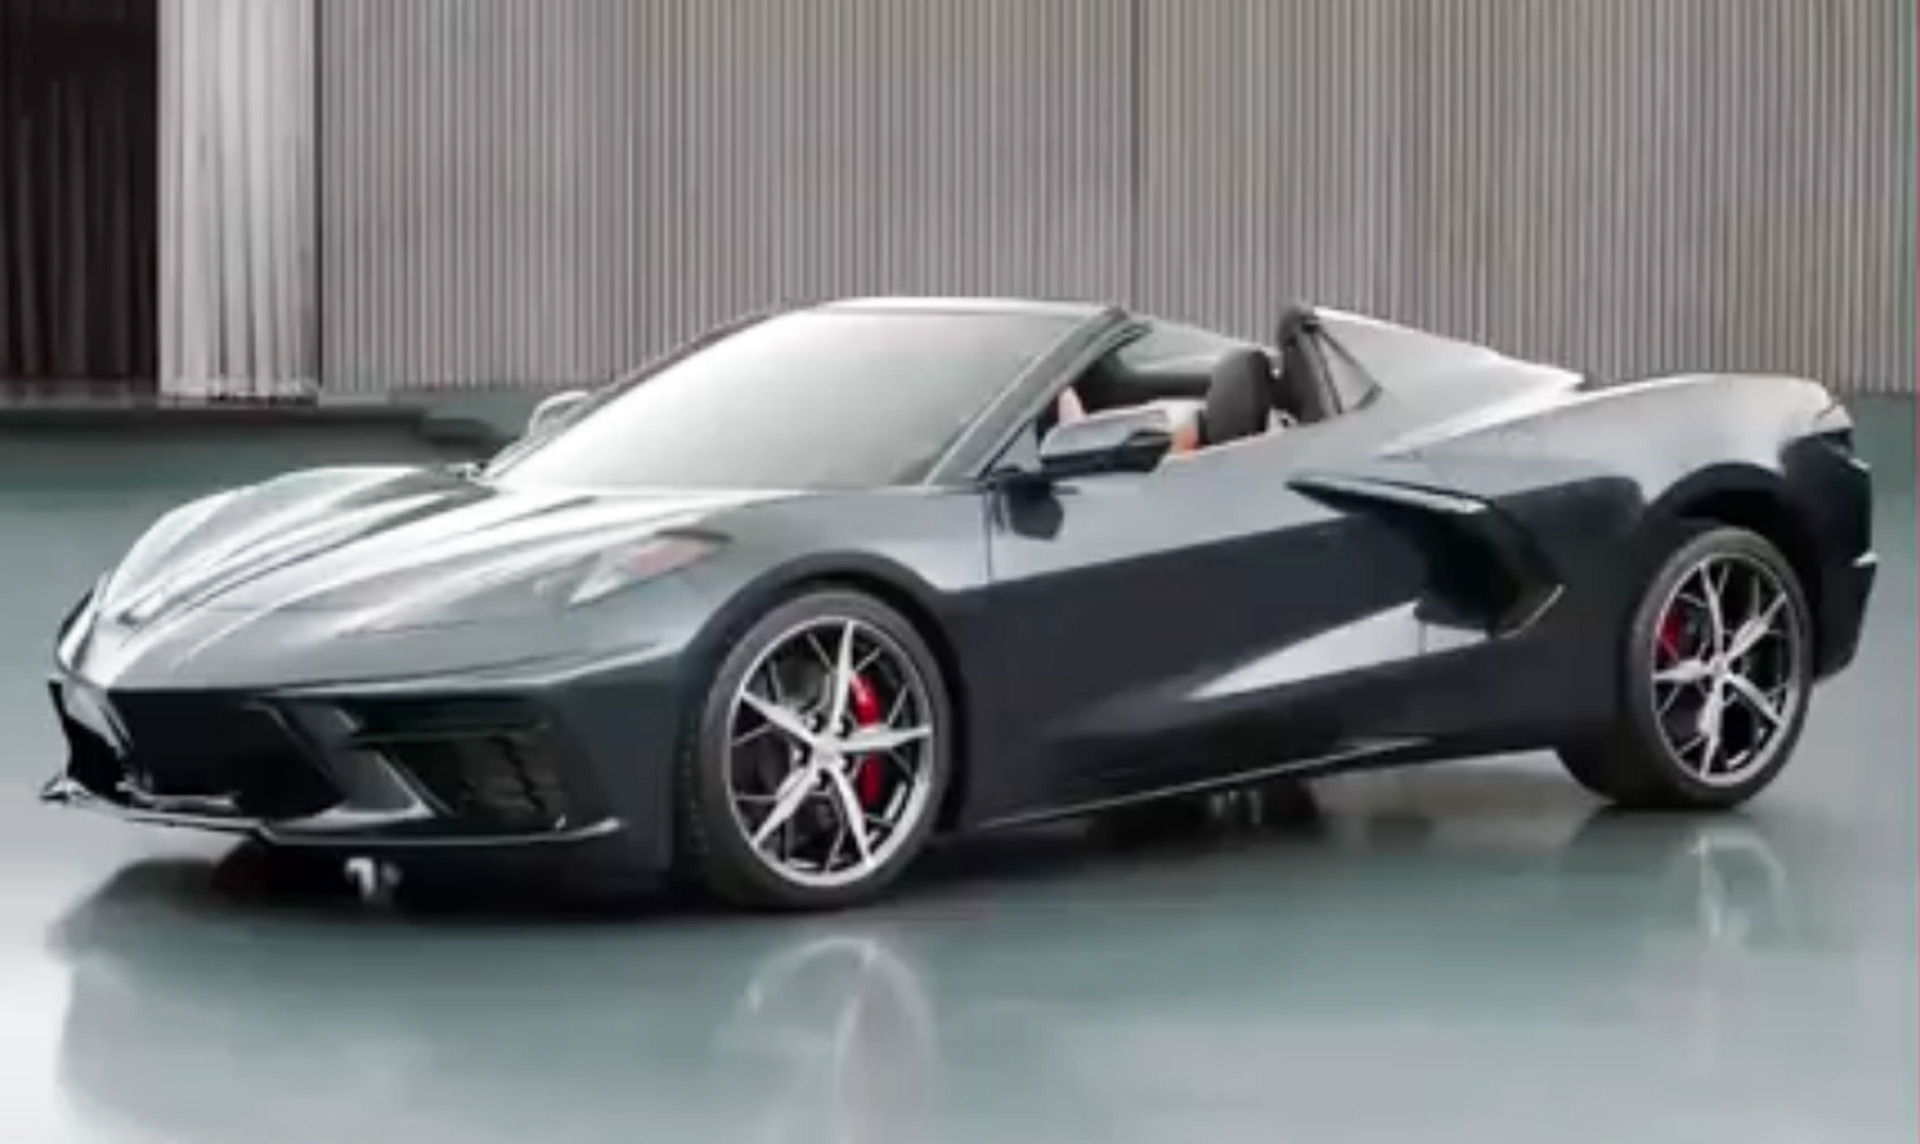 Top already dropped on 2020 Chevrolet Corvette Stingray Convertible 1920x1144